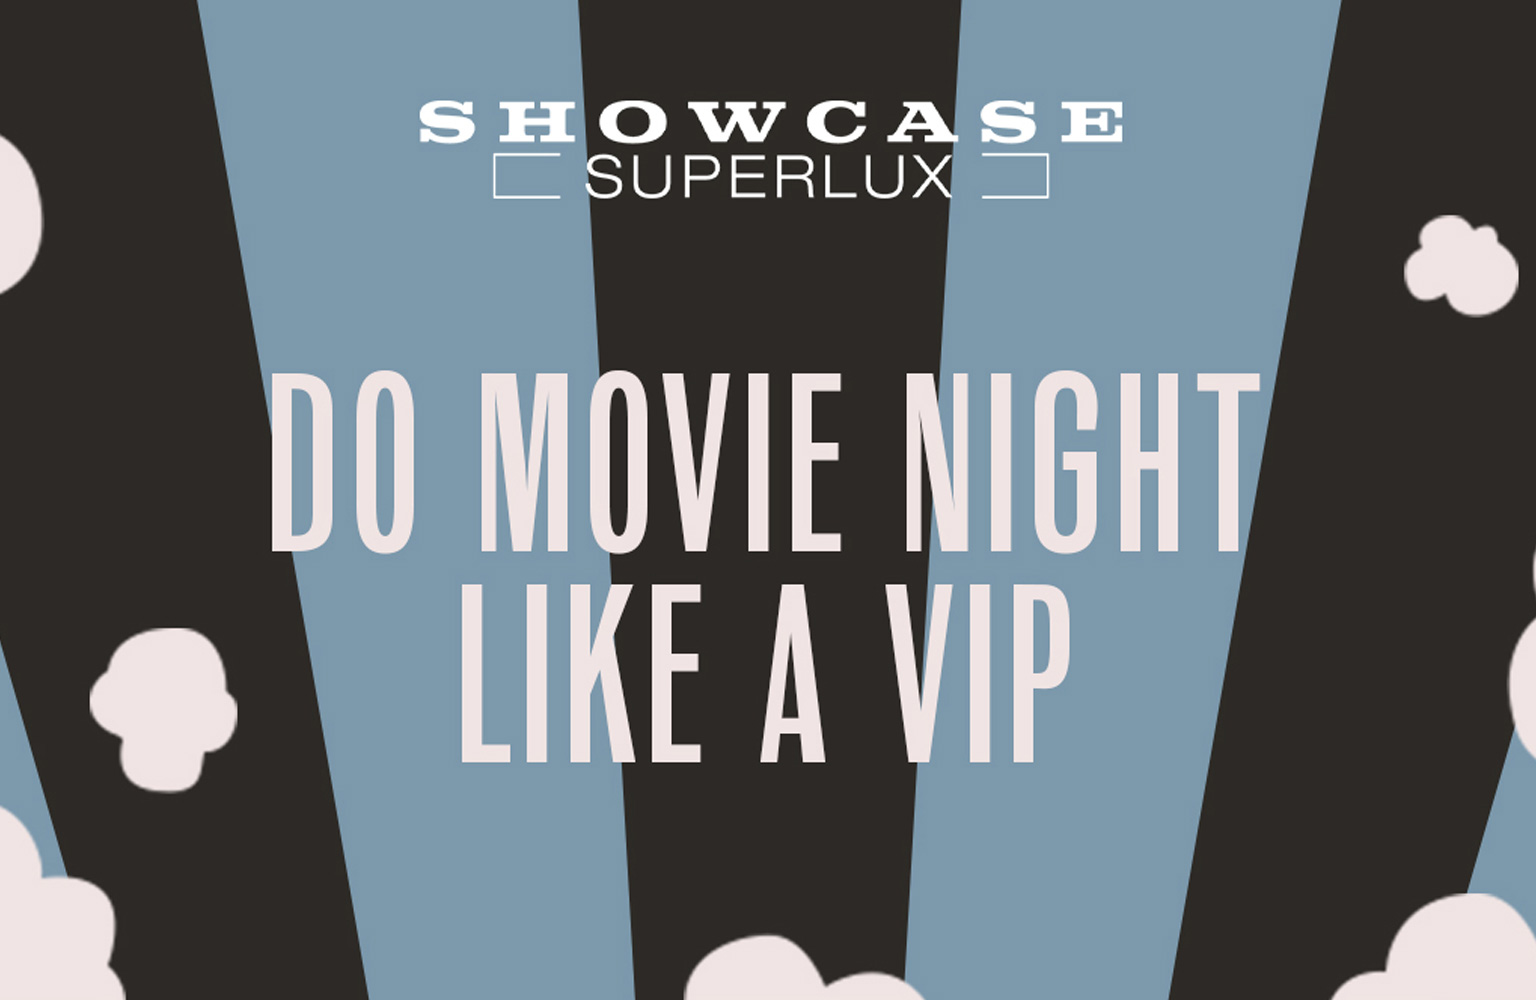 Do movie night like a VIP at Showcase SuperLux!